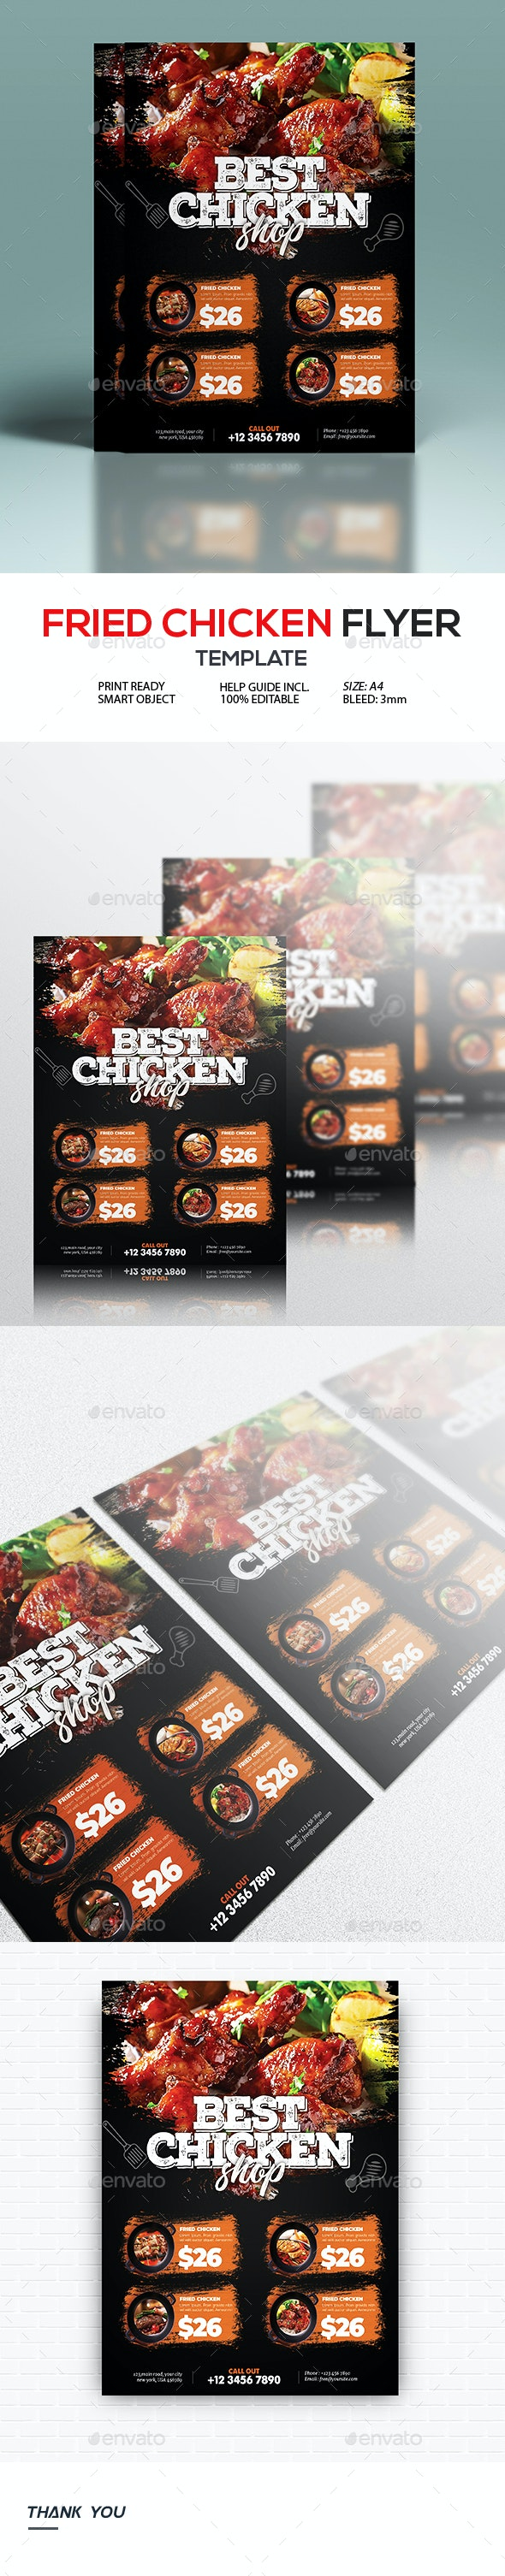 Fried Chicken Flyer - Restaurant Flyers